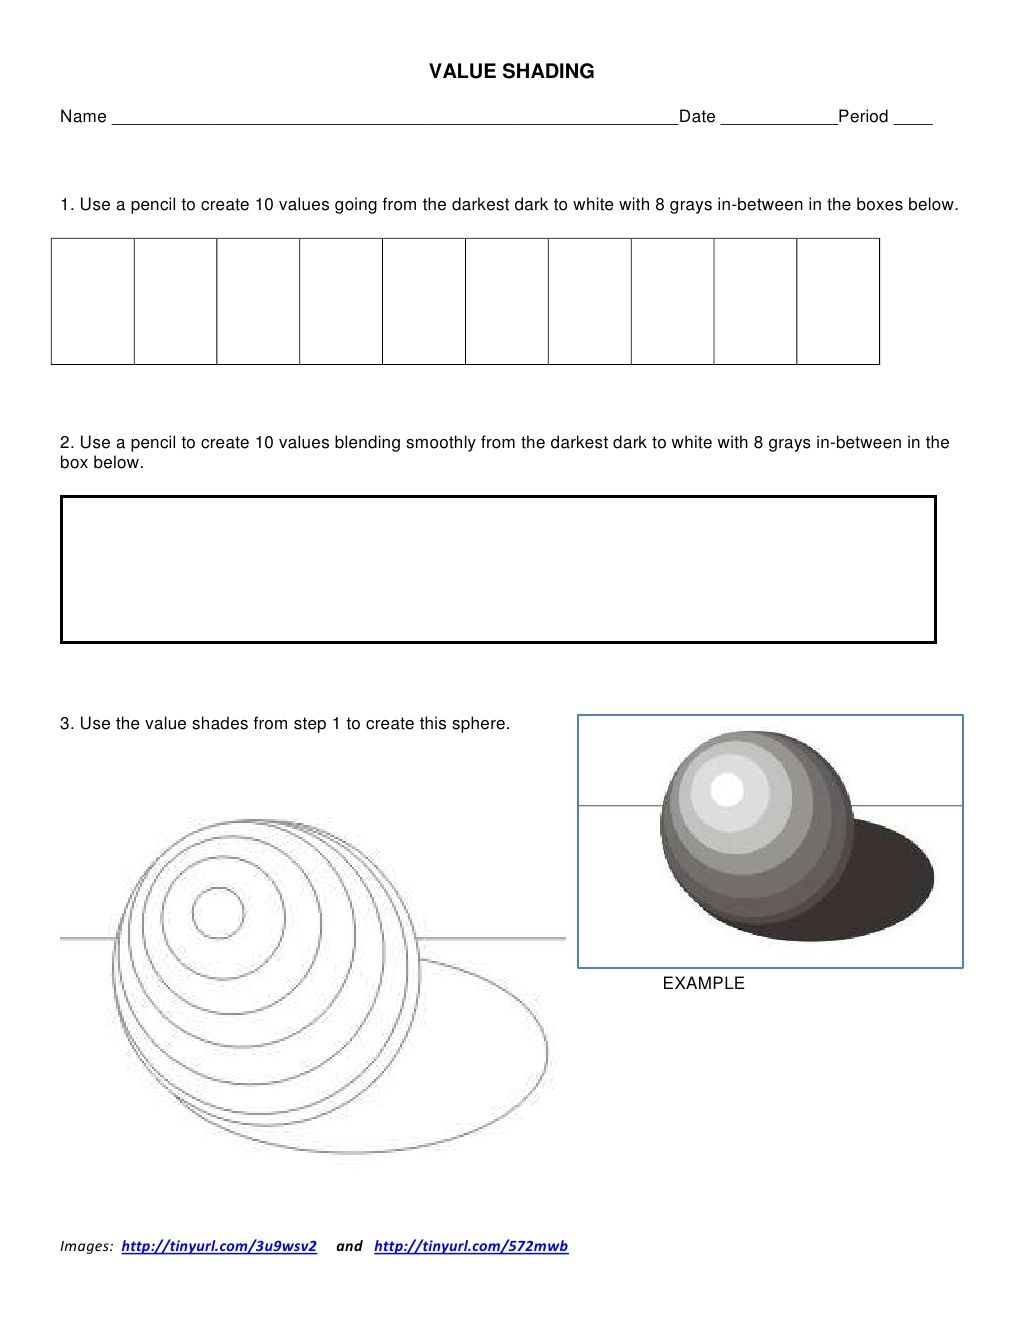 worksheet Shading Worksheet value shading worksheet by ksumatarted via slideshare art slideshare